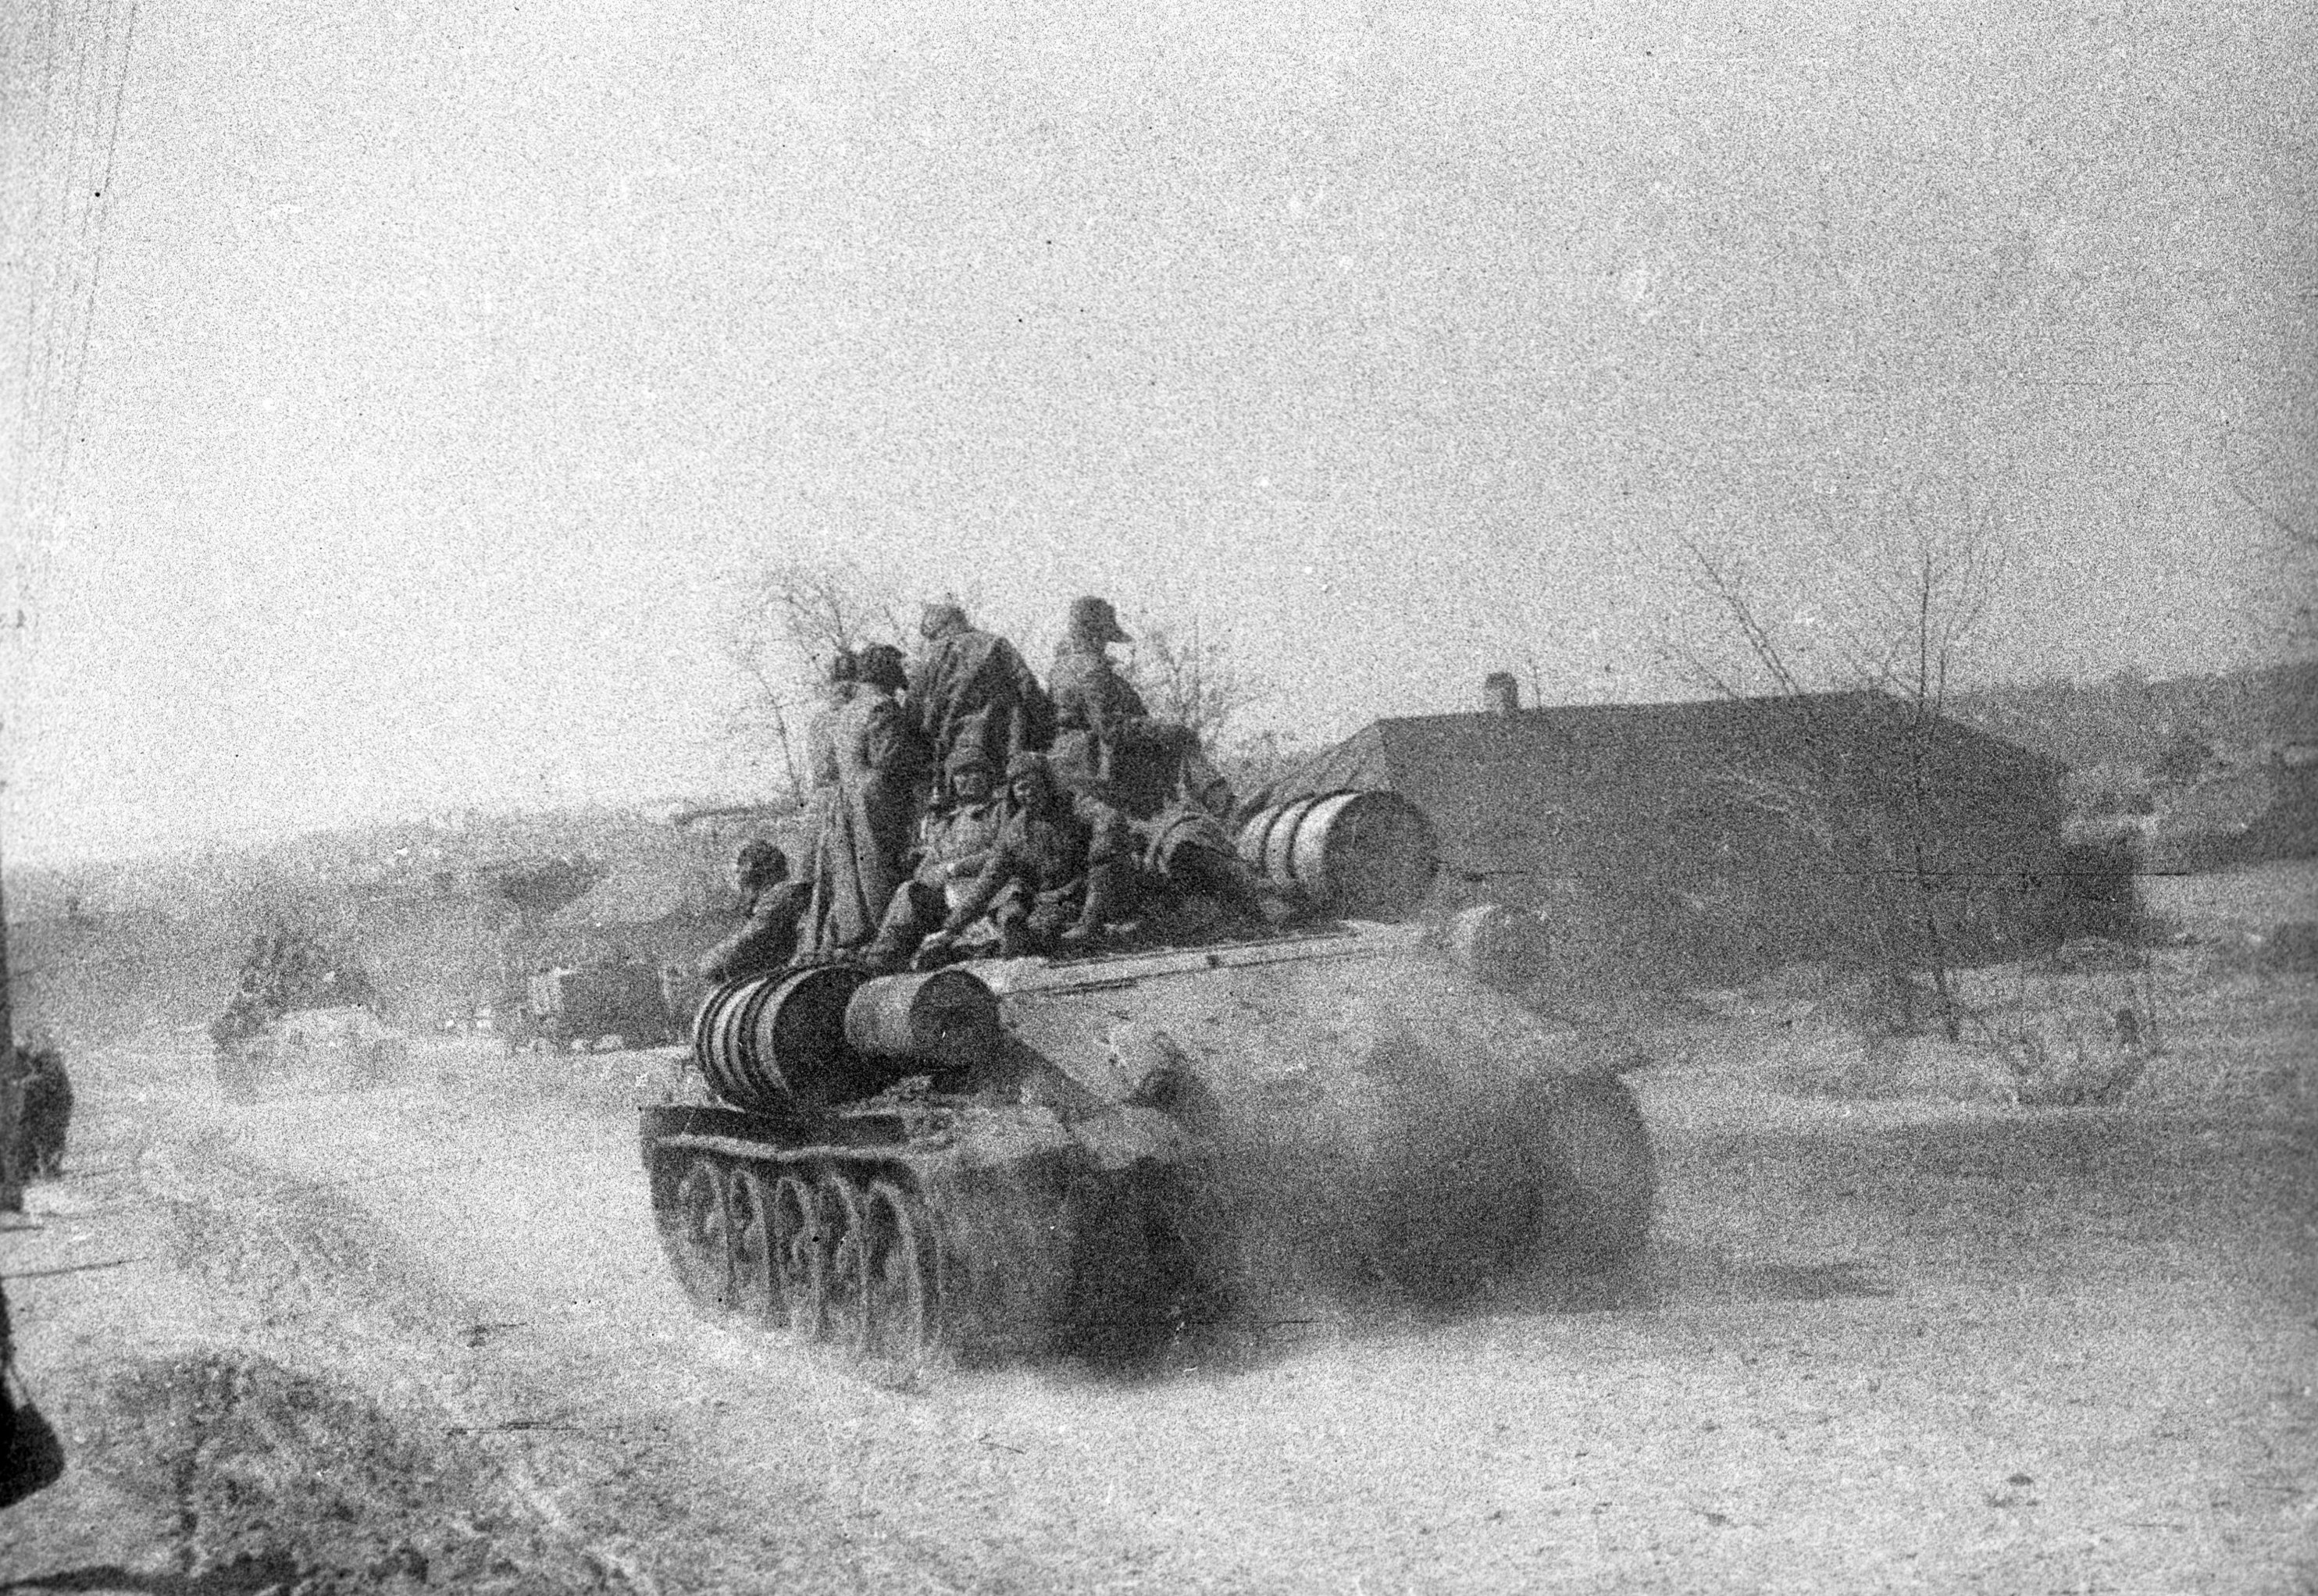 Tanks of the 64th Army approaching Stalingrad